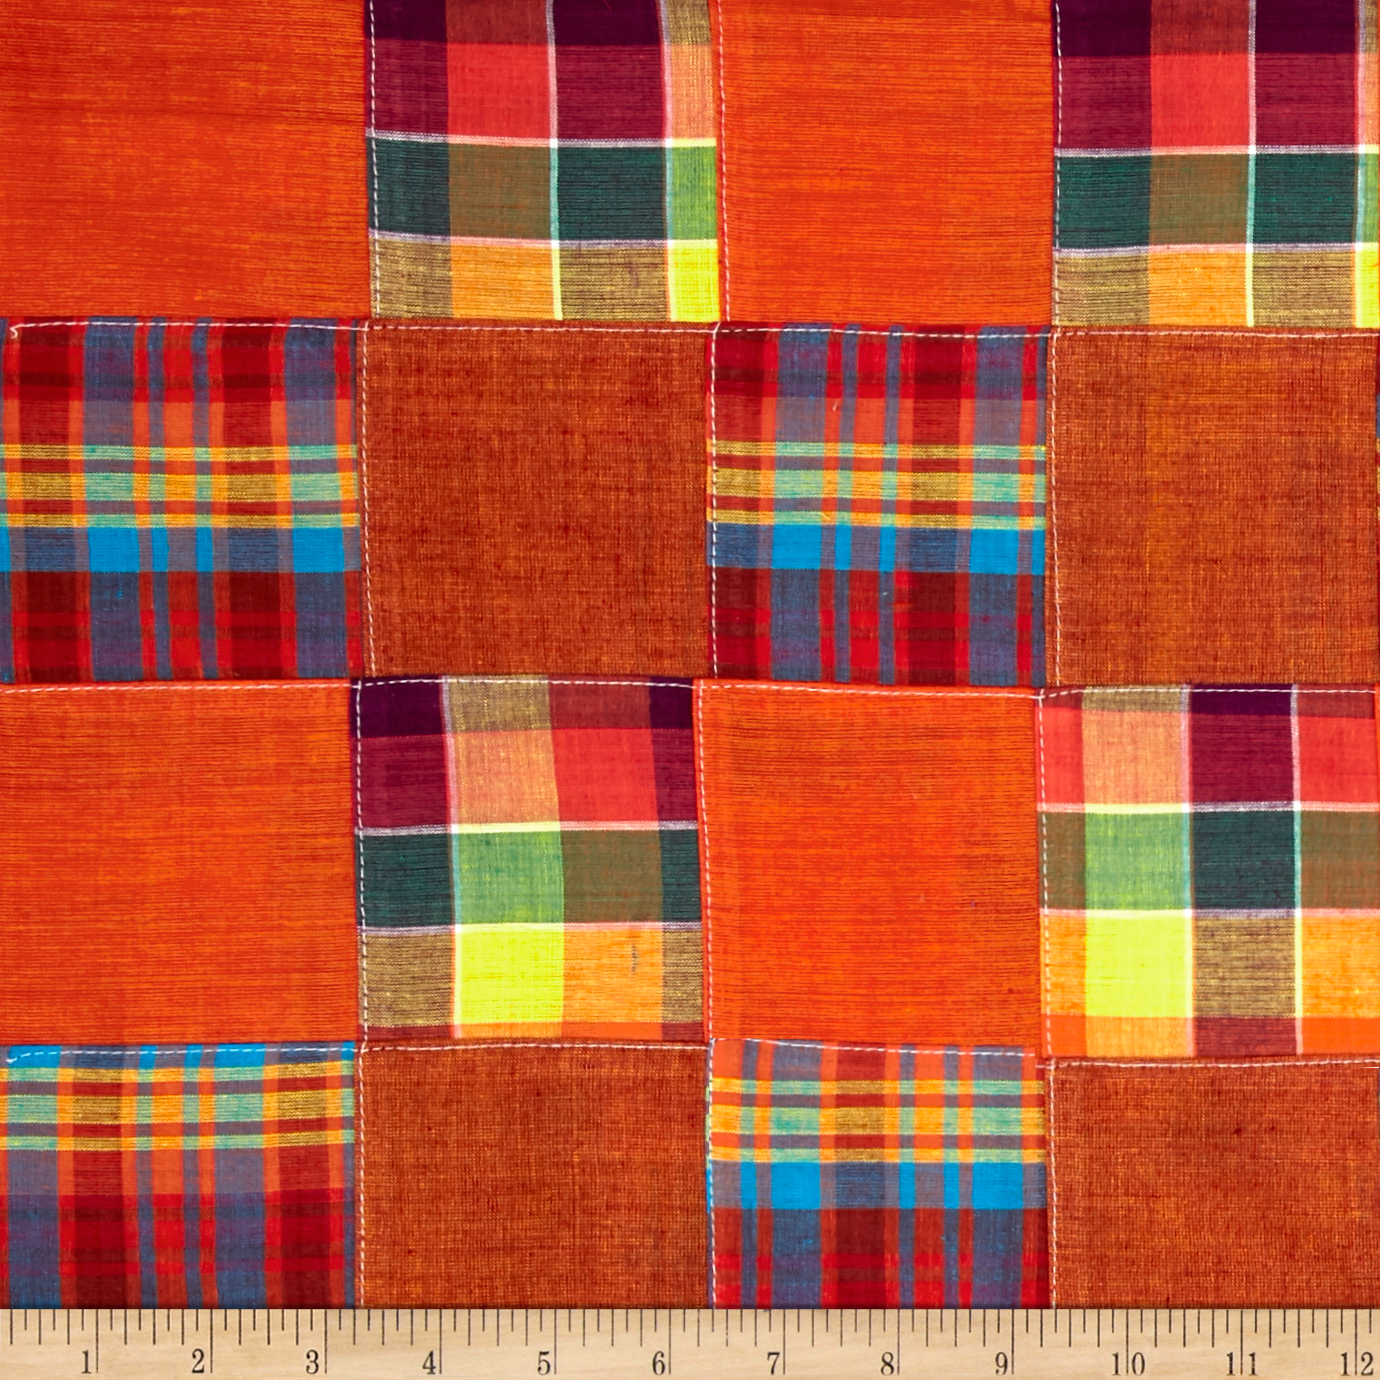 Madras Plaid Patchwork Orange Fabric by Textile Creations in USA